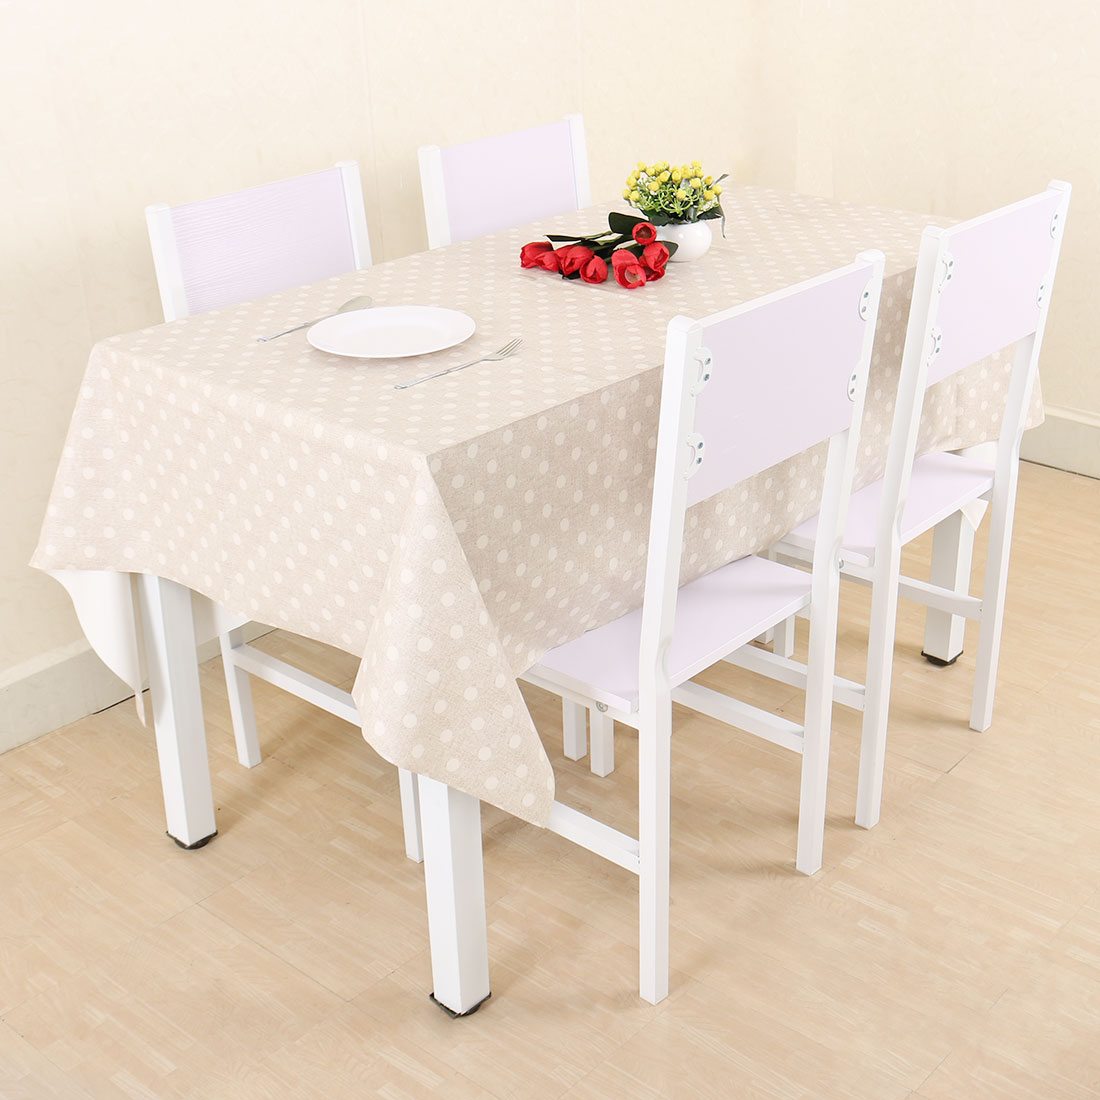 Walmart & Polka Dot Wipe Clean PVC Vinyl Tablecloth Pioneer Woman Table Cover For Rectangular Tables